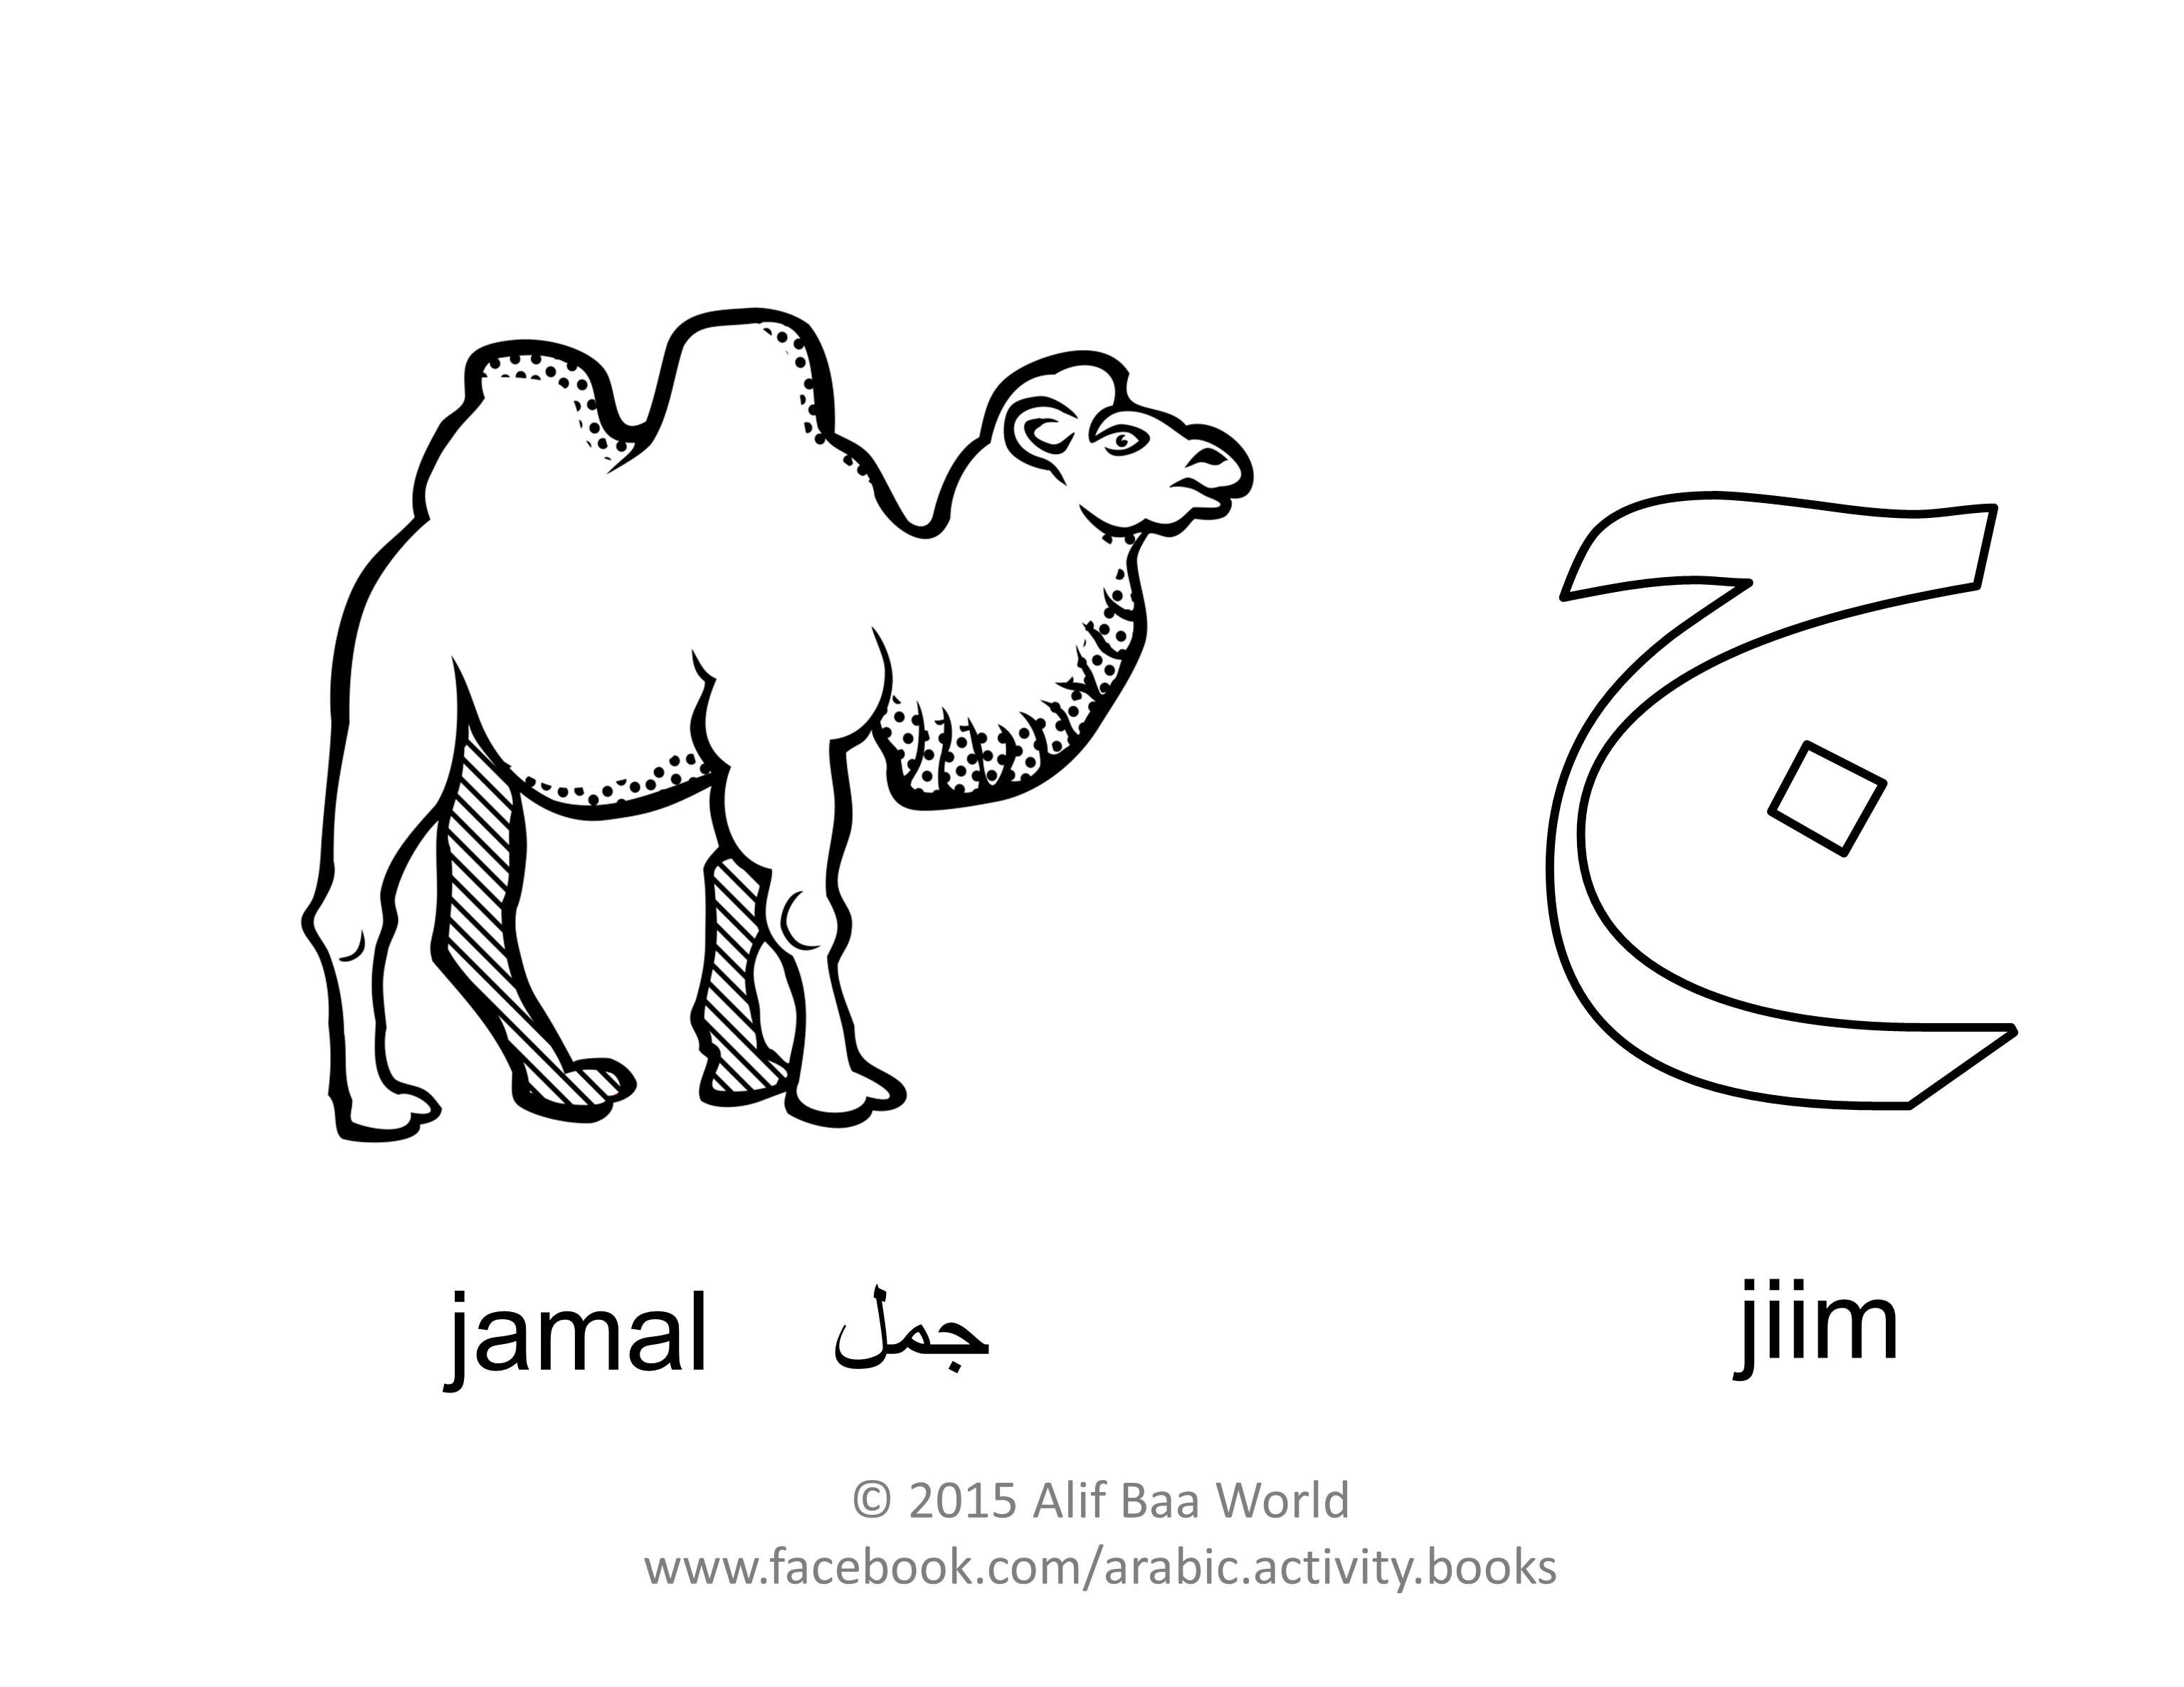 The Fifth Letter Of The Arabic Alphabet Is Name Jiim Sound J For Pronounced Jamal